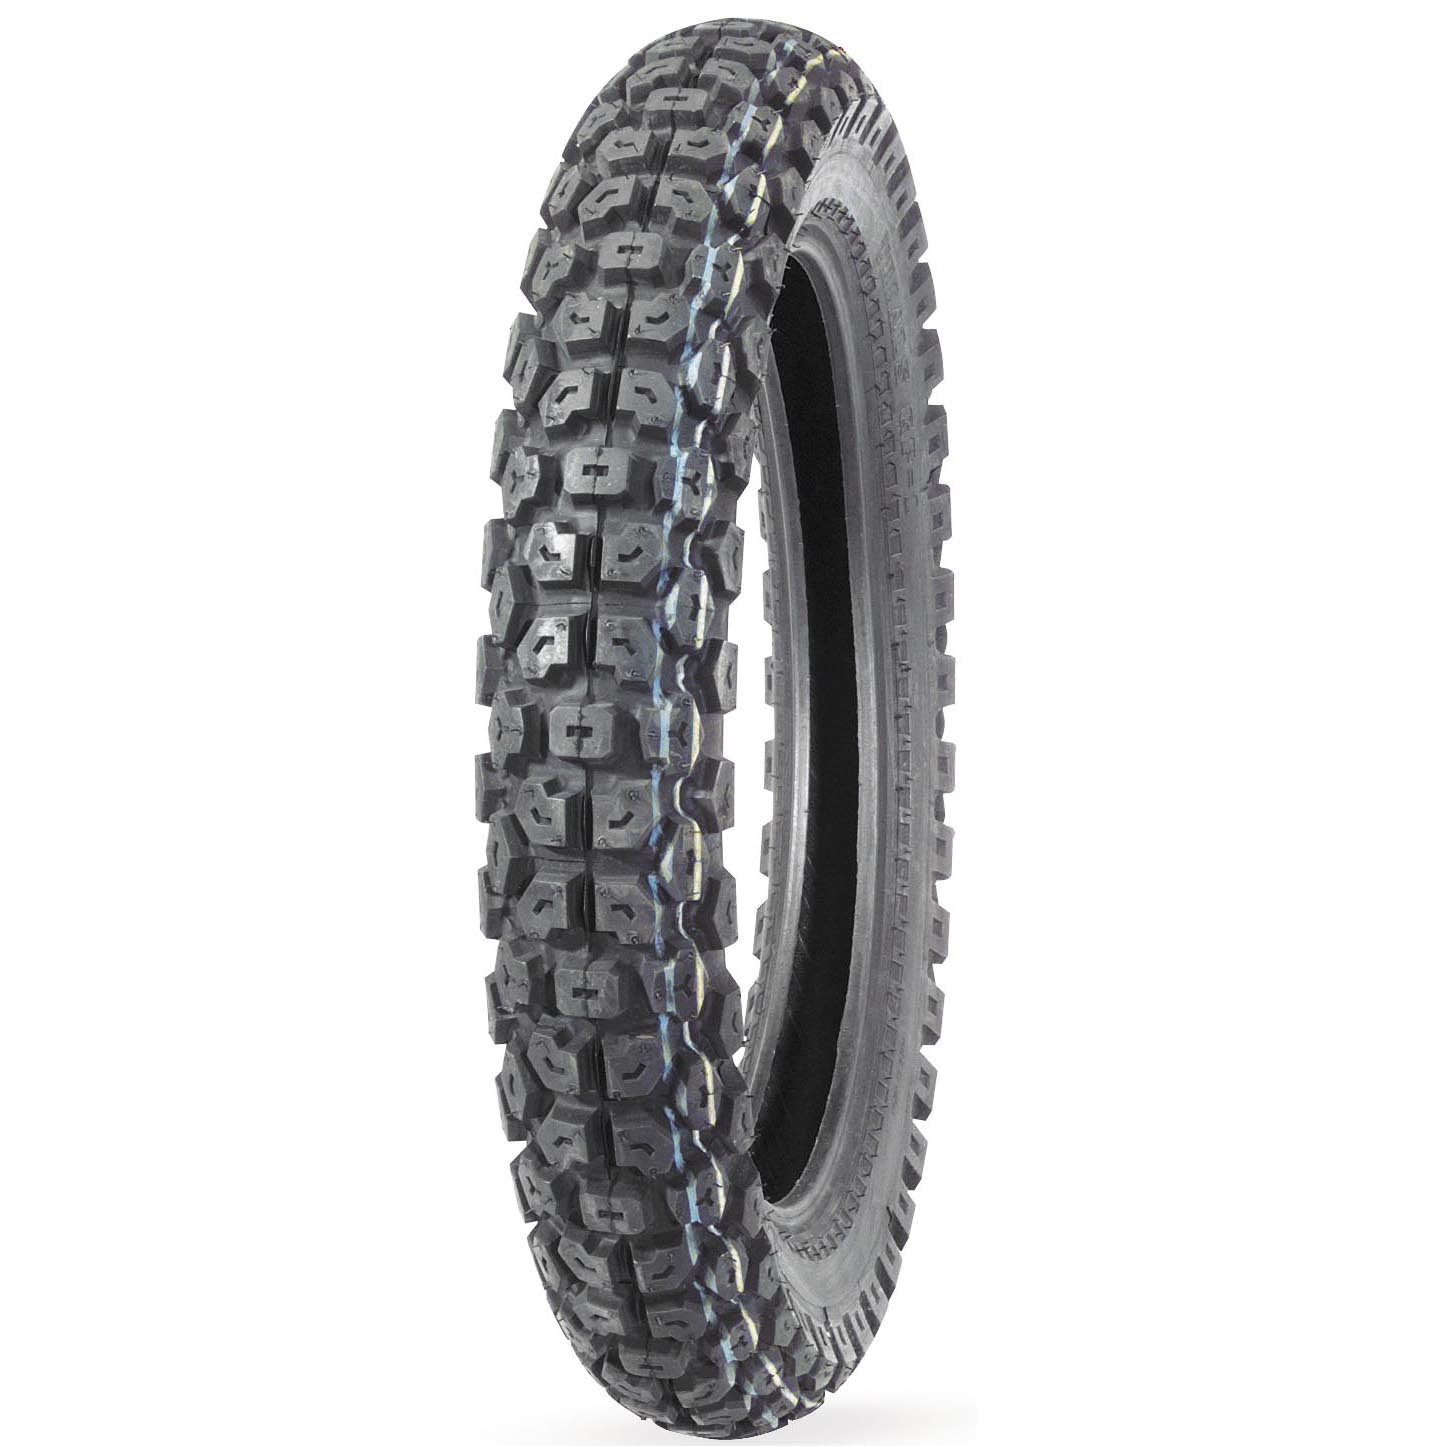 IRC GP-1 Dual Sport Rear Tire 5.10-17